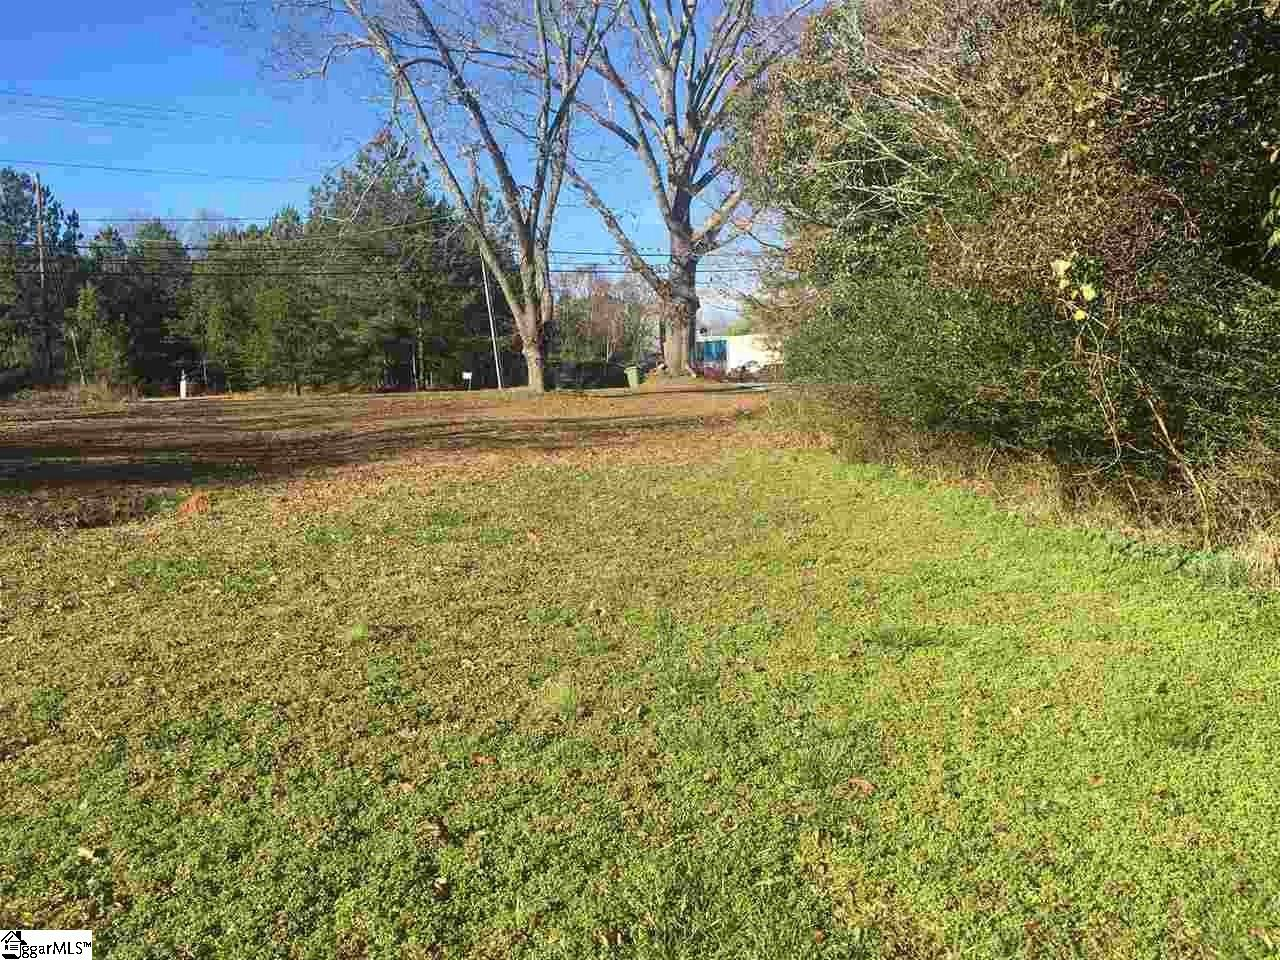 503 W Main Central, SC 29630